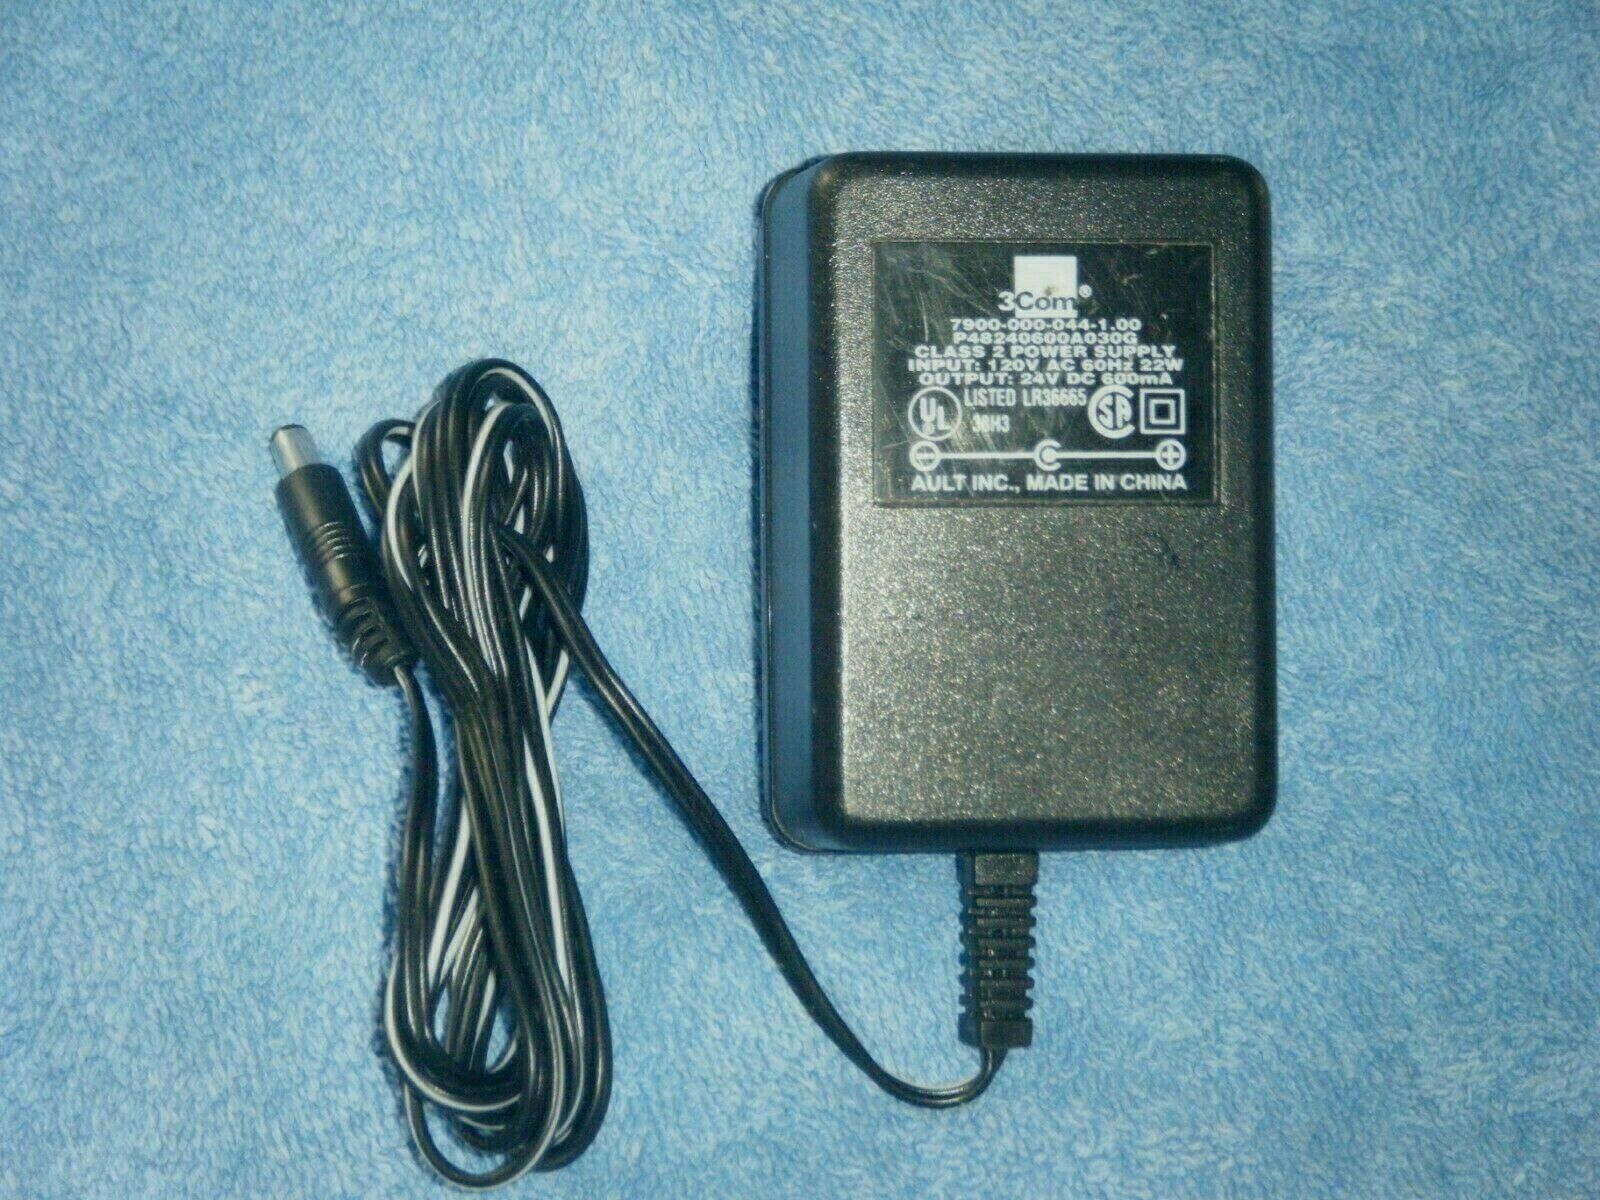 3Com P48240600A030G AC Adapter Power Cord Supply Charger Cable Wire Genuine Original